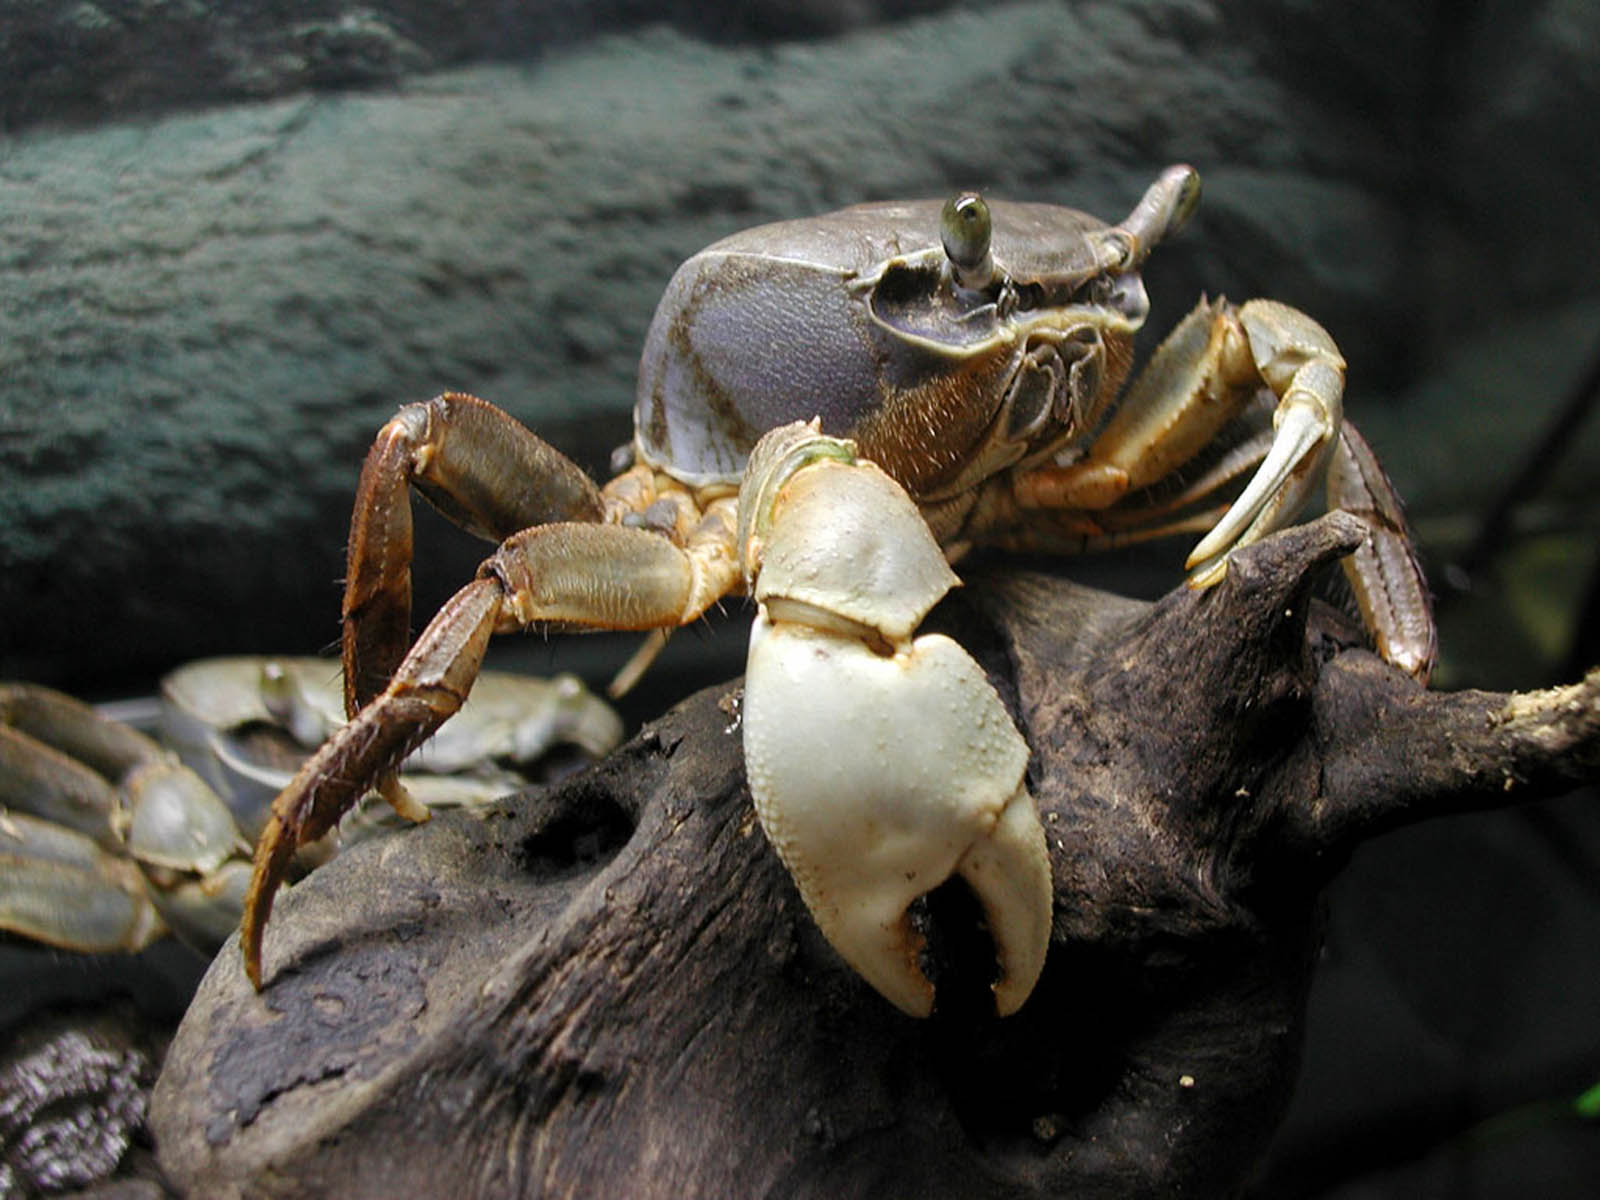 Wallpapers Crab Wallpapers HD Wallpapers Download Free Images Wallpaper [1000image.com]